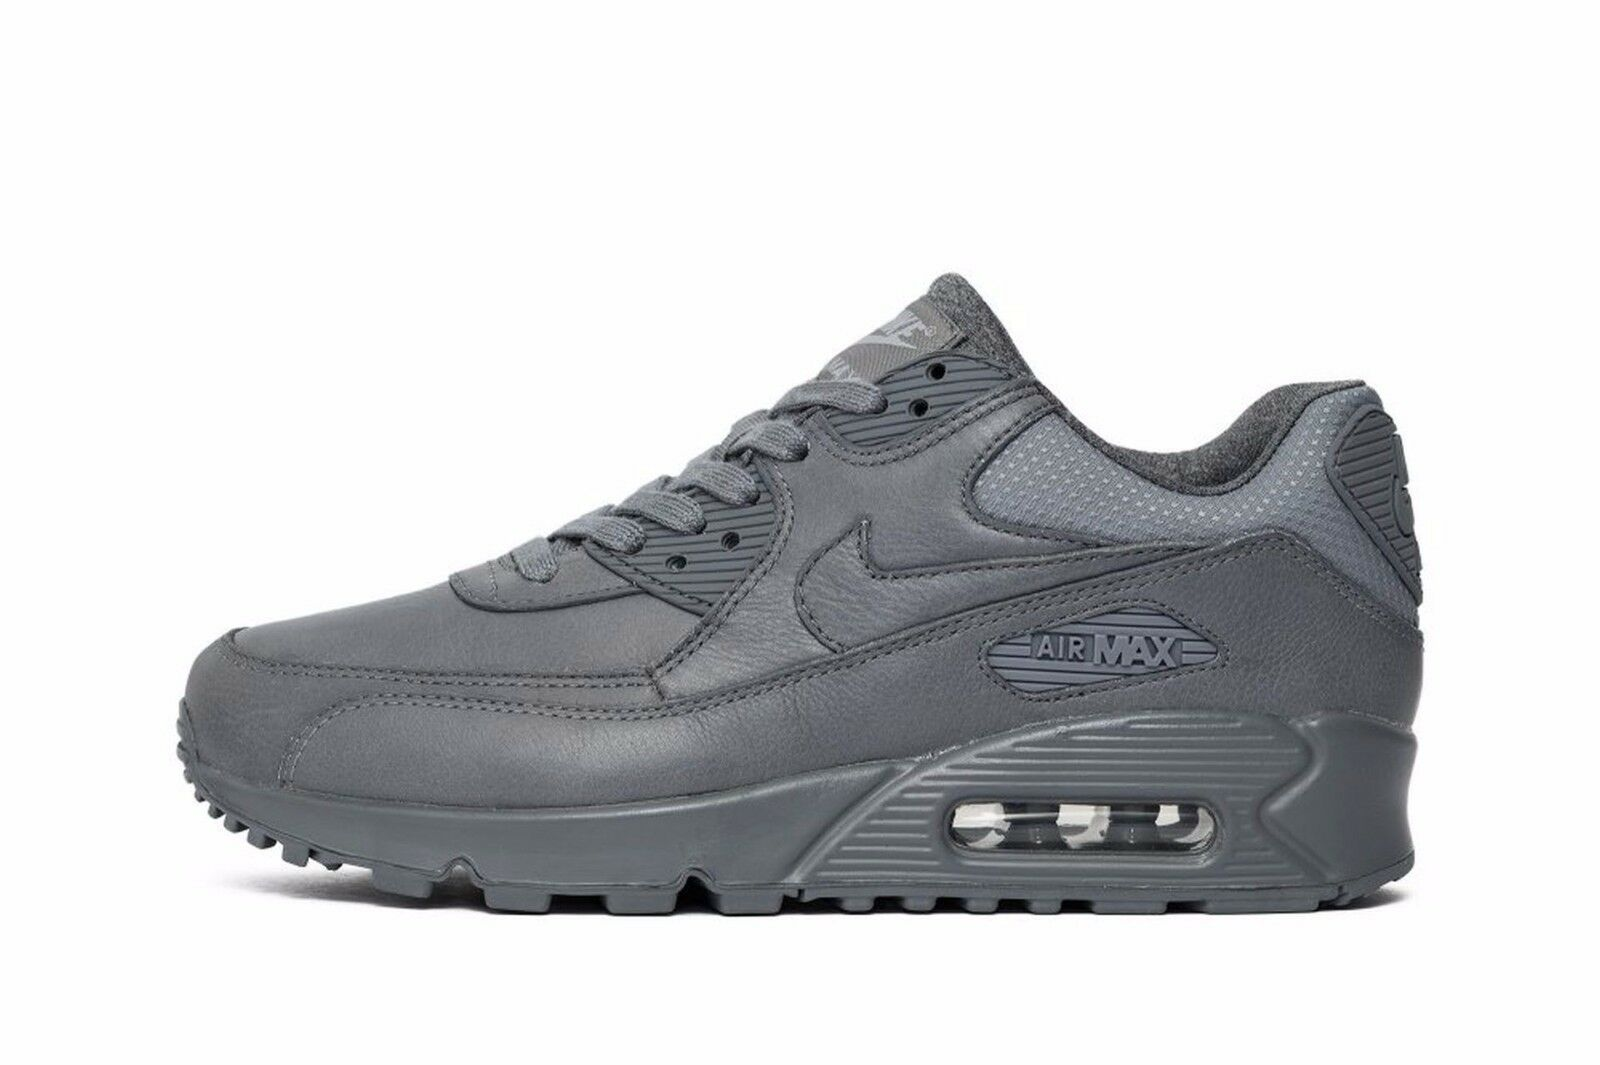 NIKE AIR MAX 90 Pinnacle Limited  Wmn Sz 6.5 839612-003 COOL GREY LEATHER